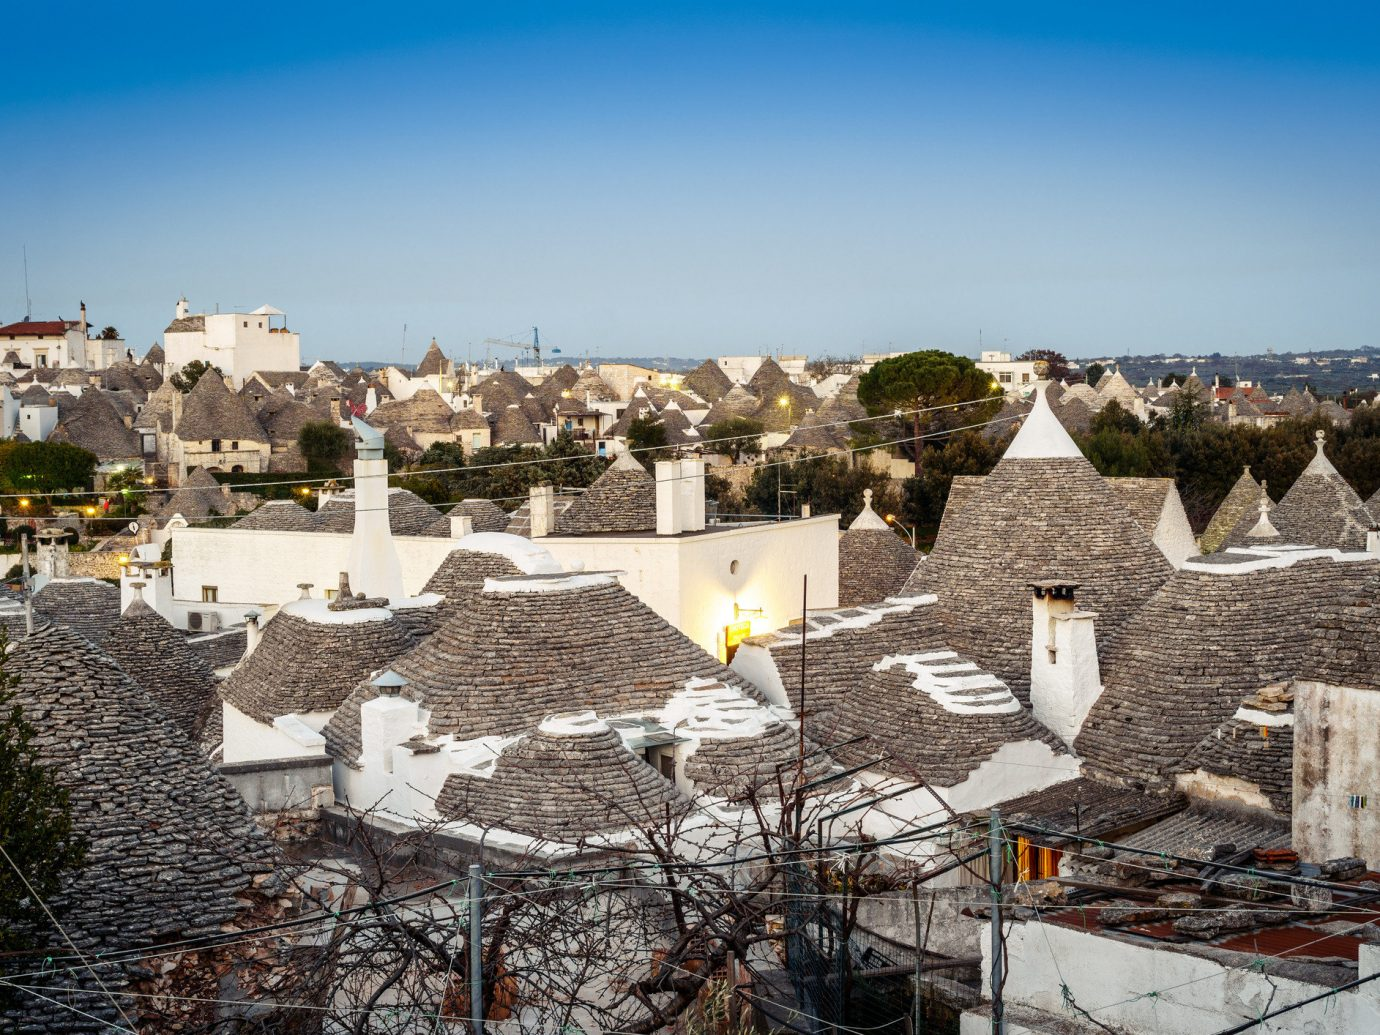 Trip Ideas sky outdoor snow Town urban area City wall roof Village tourism tree outdoor structure cityscape building house panorama